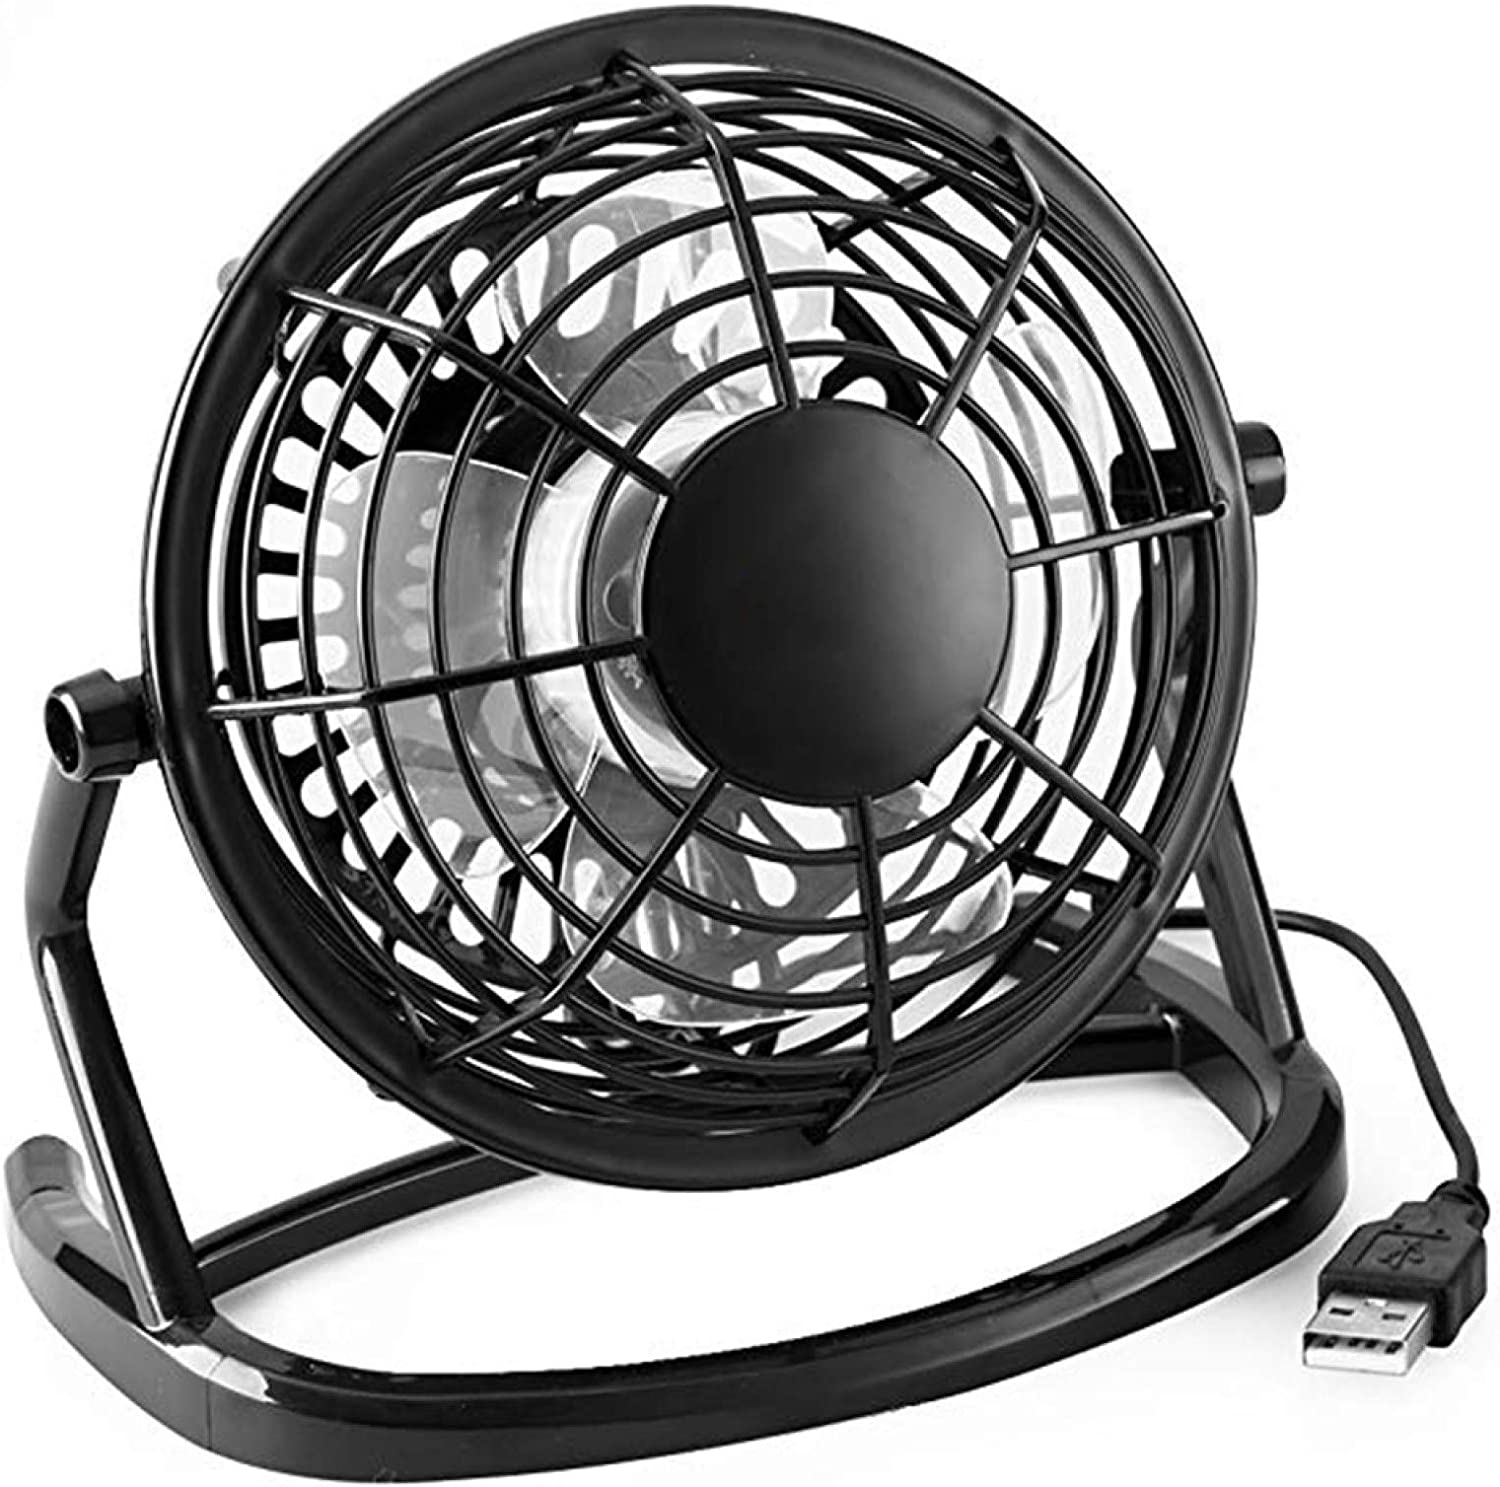 USB Powere Mini Desktop Electric 360 Degree Spring new work Rotatation With Fan Max 86% OFF